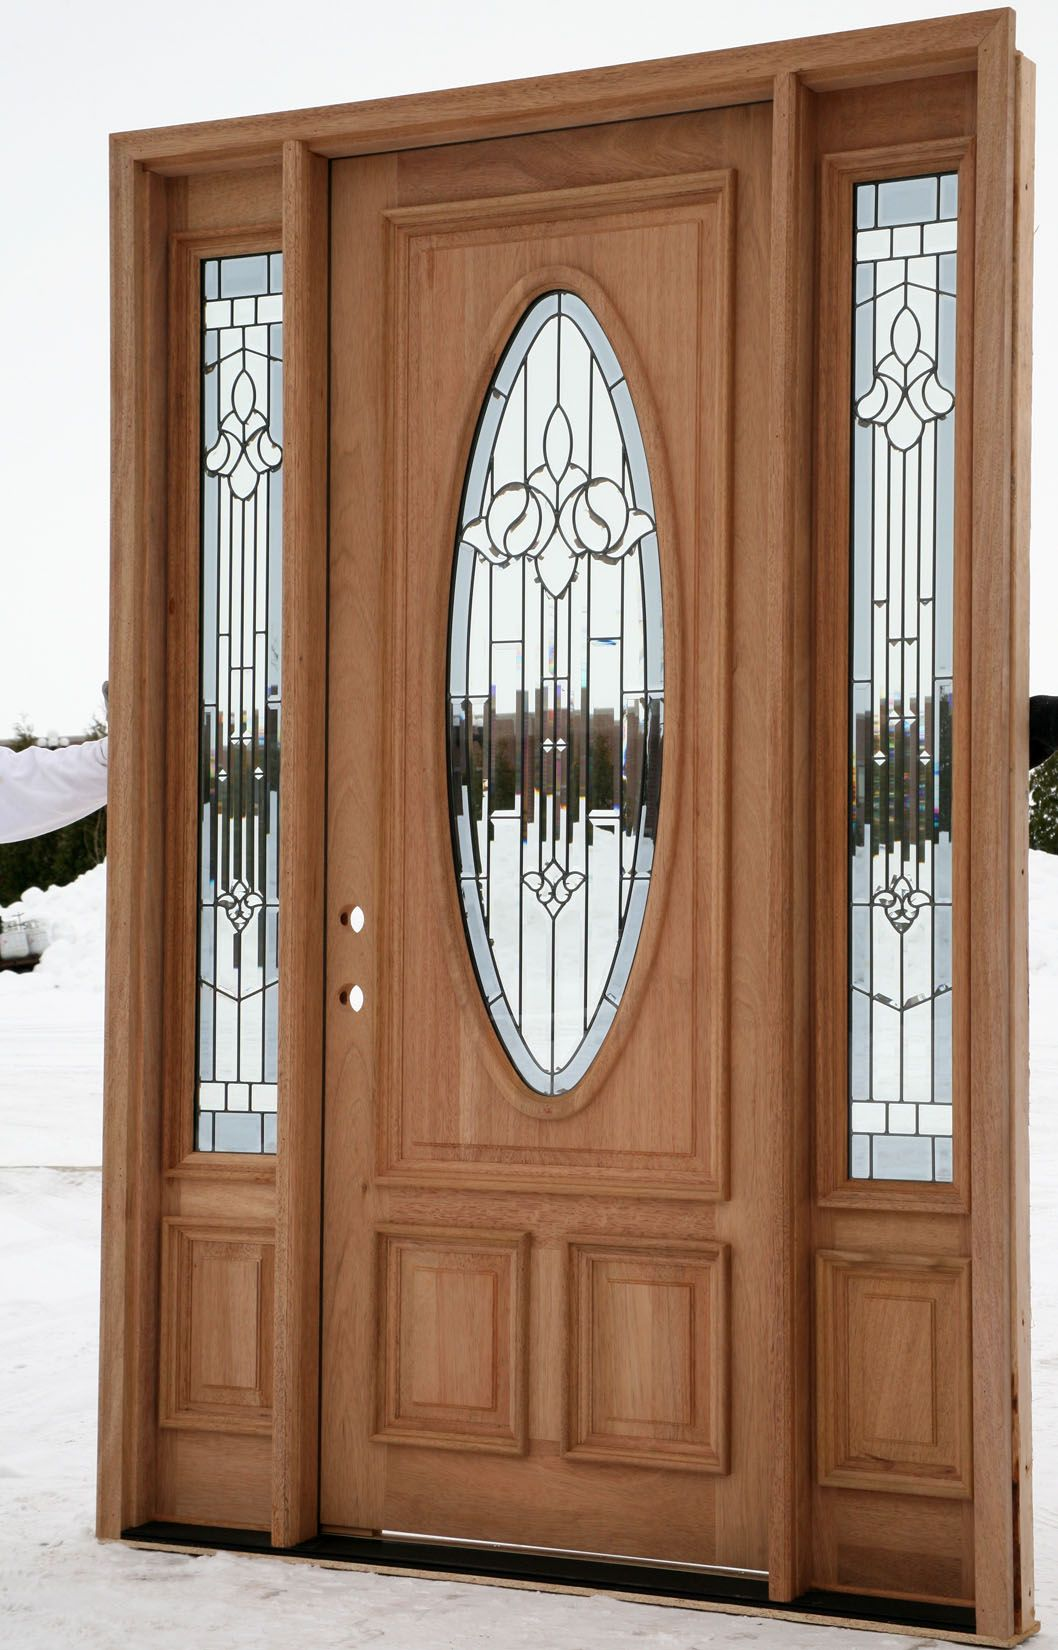 Exterior Wood Entry Doors : Exterior entry doors with sidelights house ideas